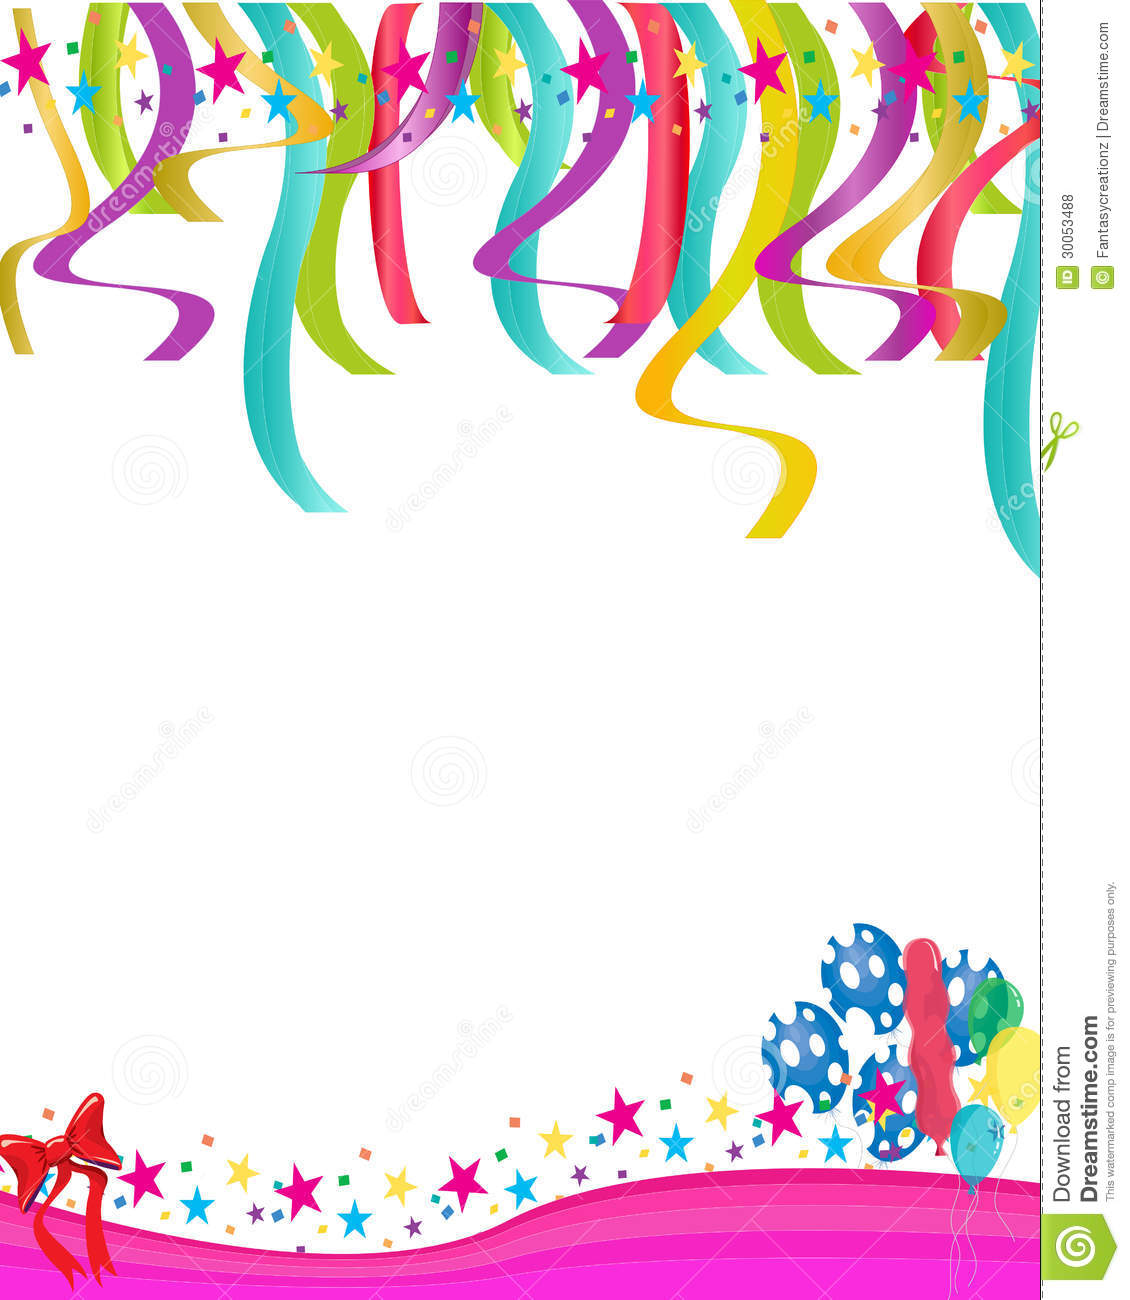 free clipart for birthday invitations ; birthday_invitation_background_designs_free_1